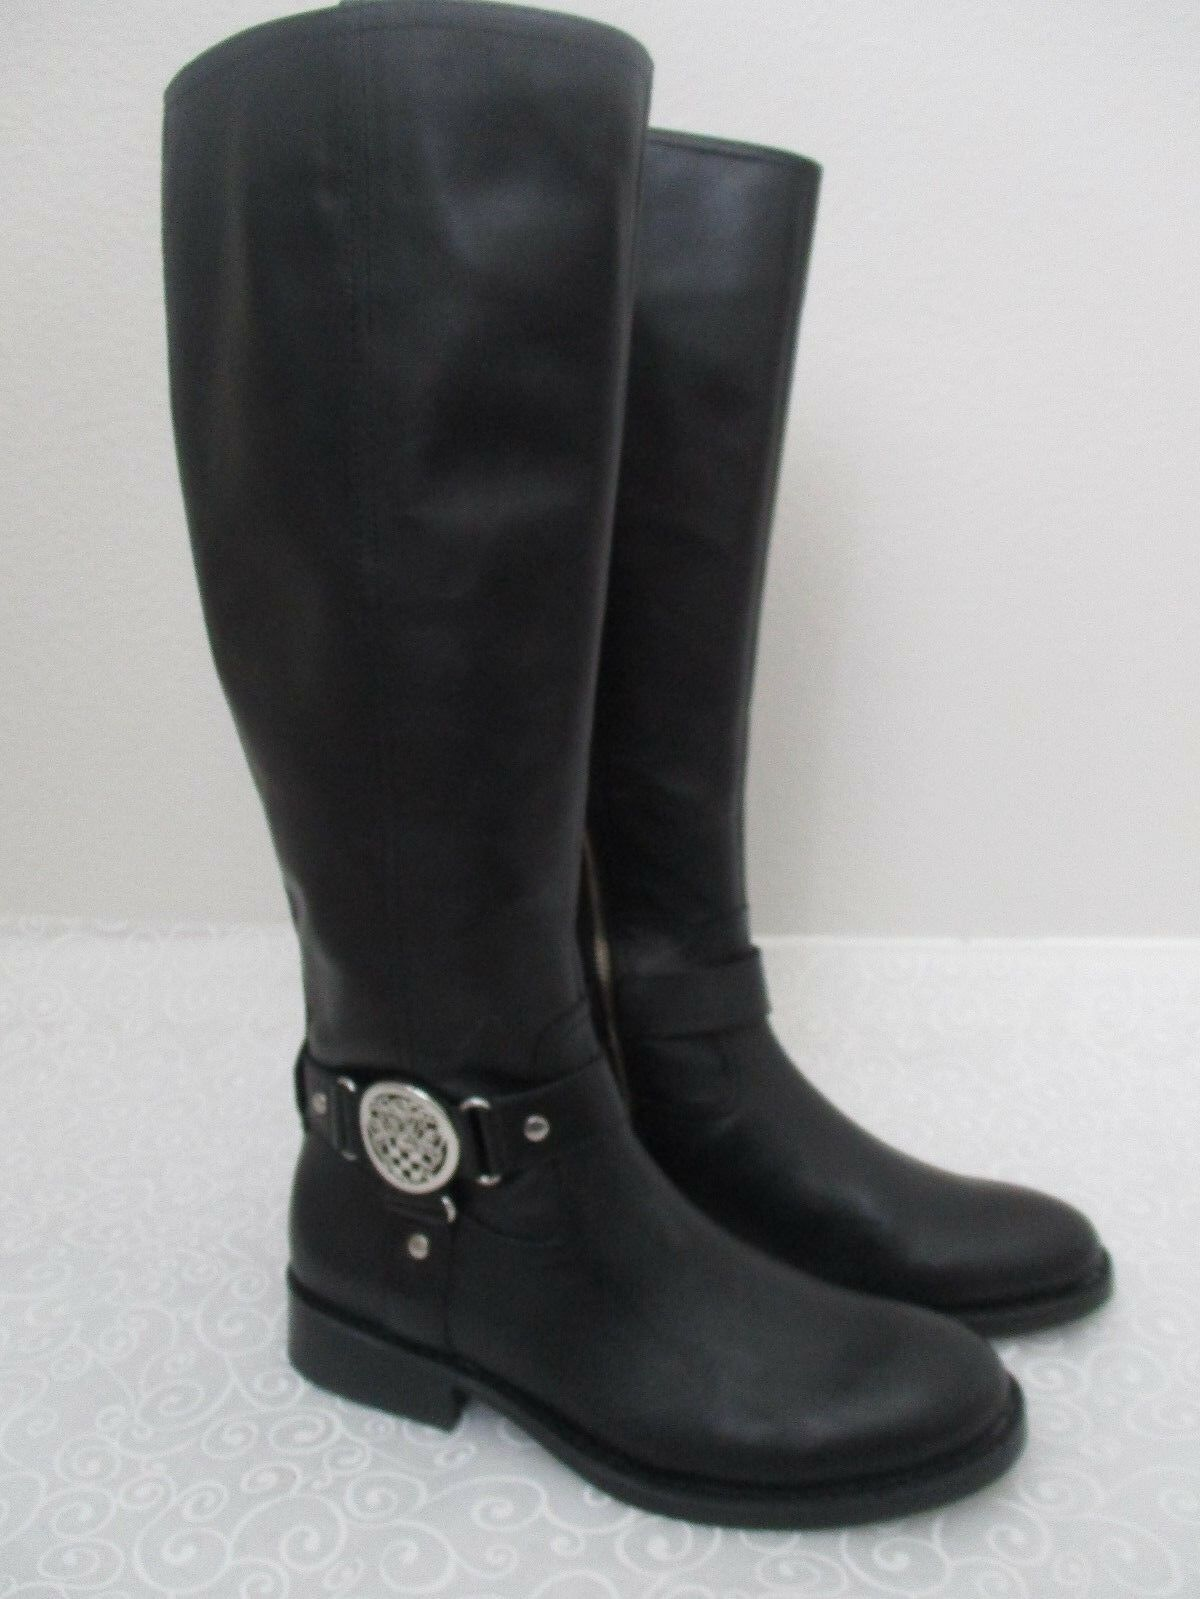 VINCE CAMUTO FARROW noir LEATHER KNEE HIGH bottes Taille 8 1 2 M - NEW